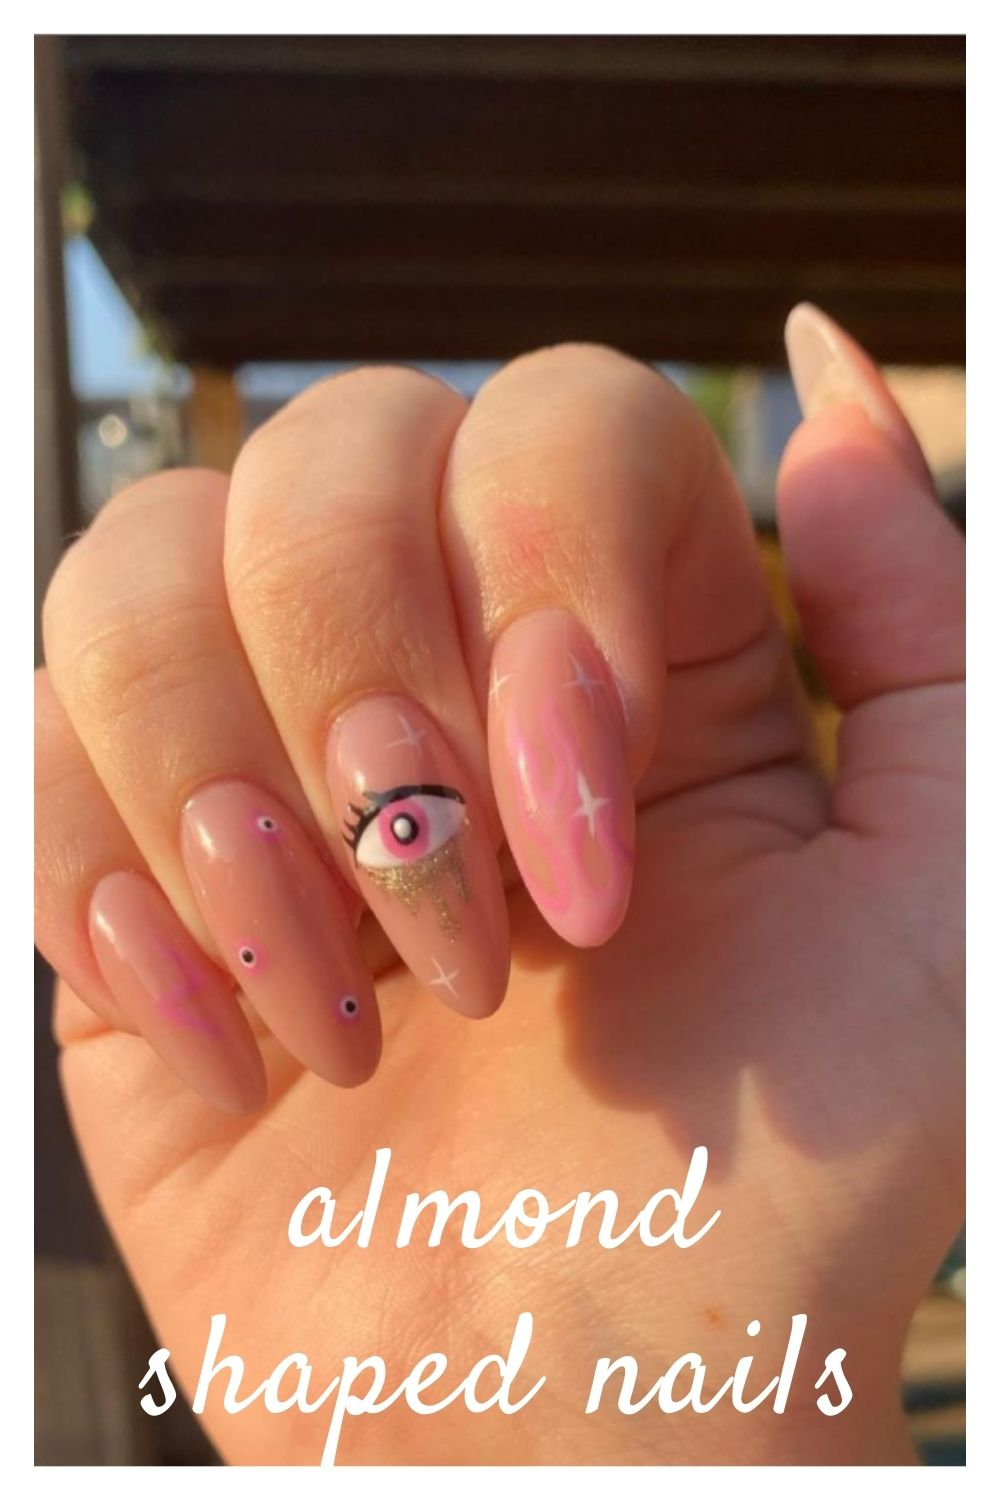 Nail art design with eyes